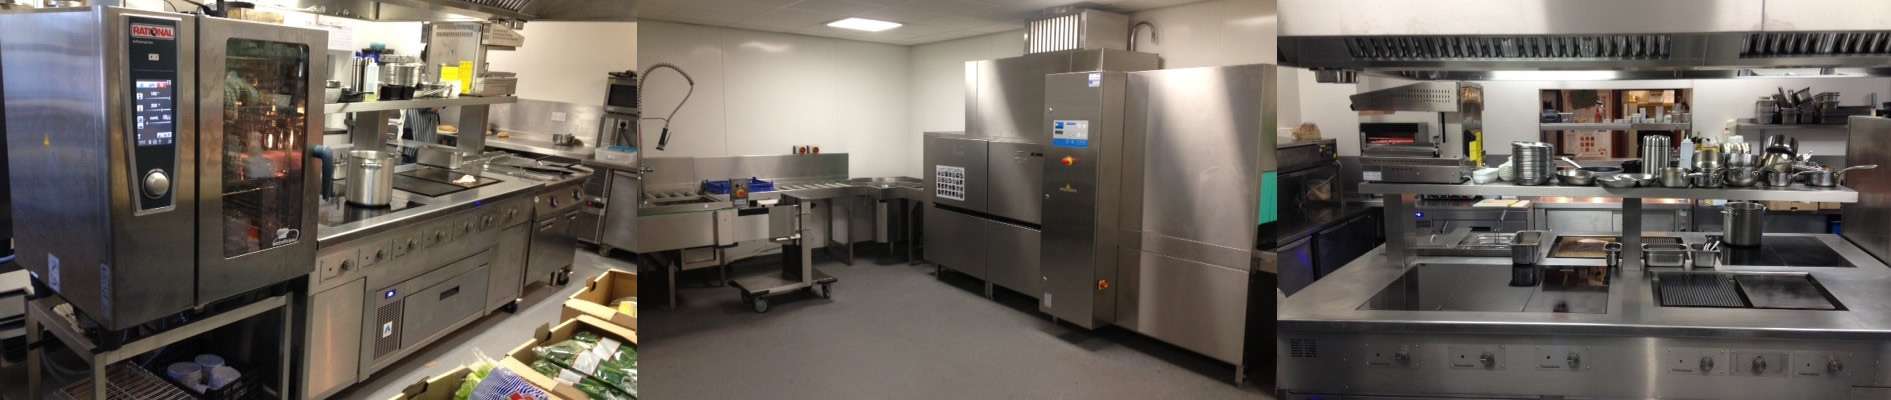 Tower Commercial Catering Ltd Leicester Certified Engineers